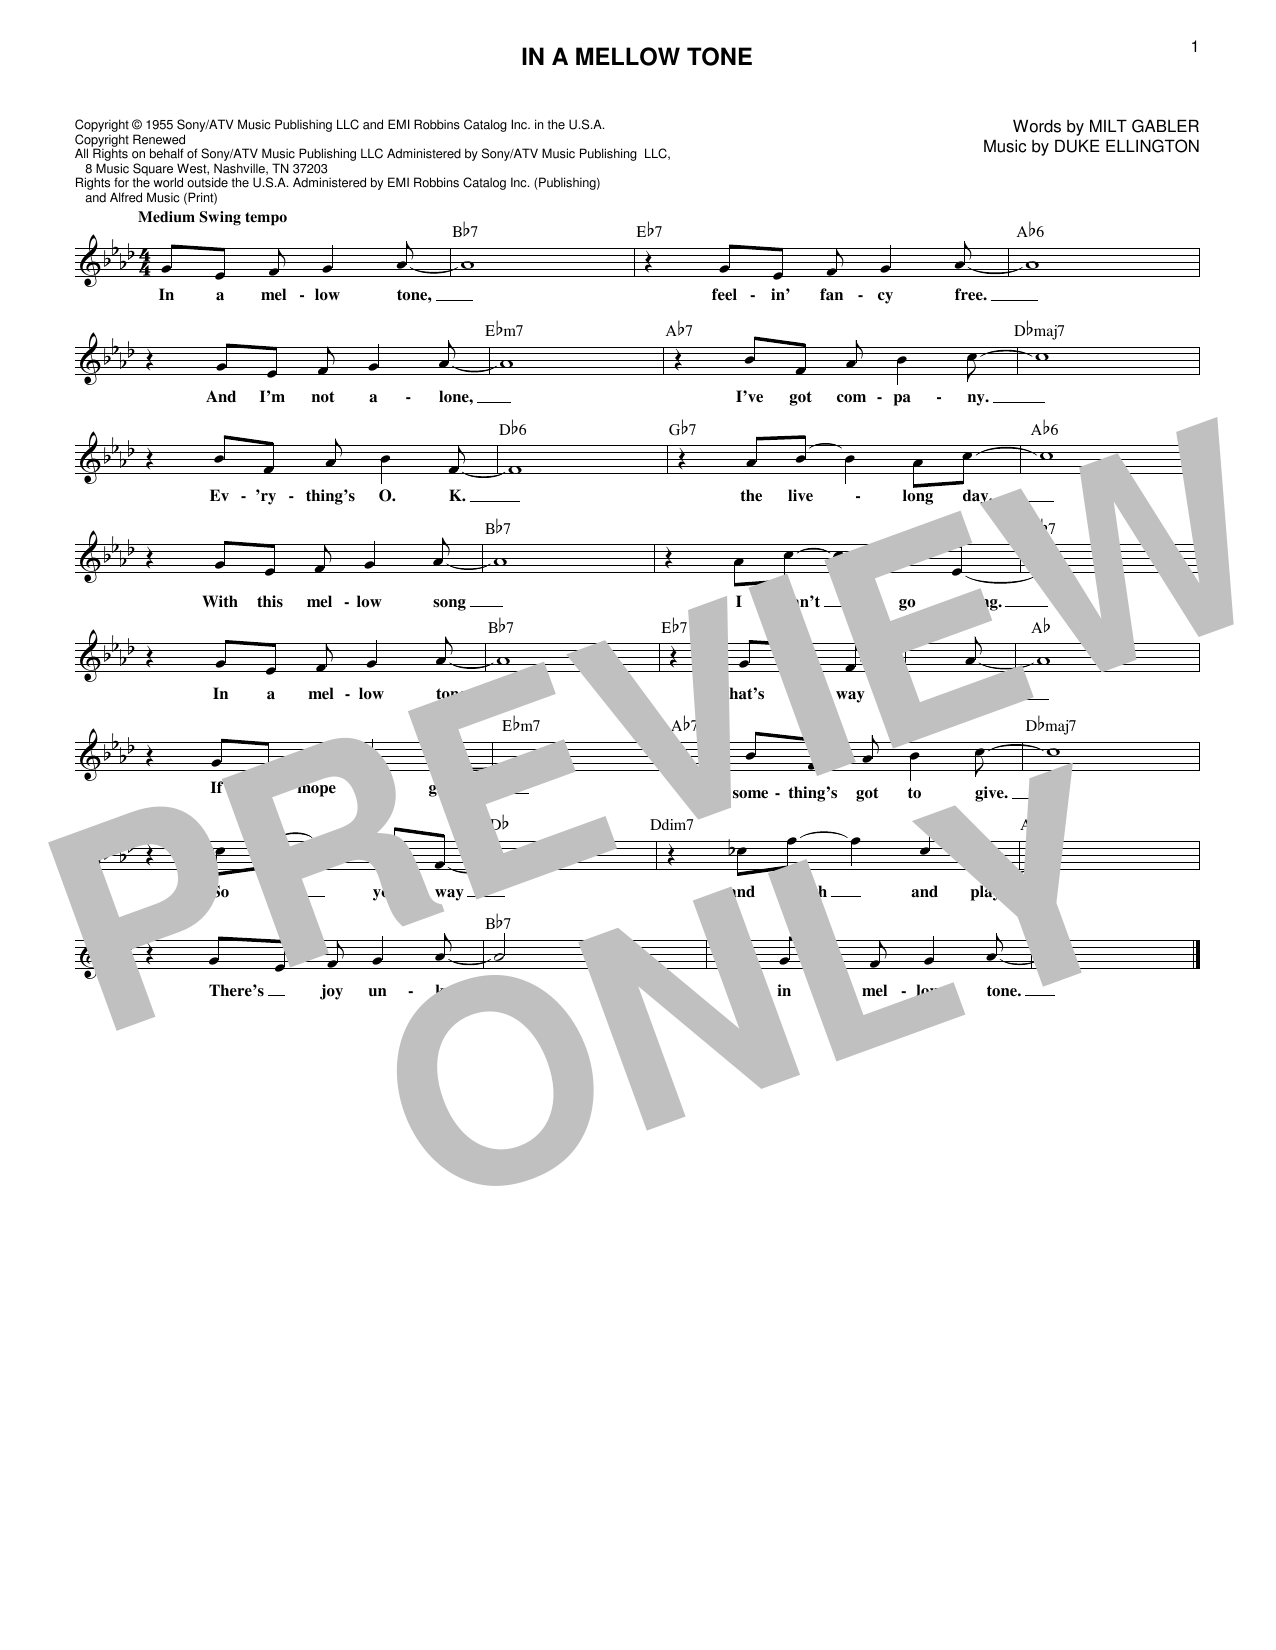 Duke Ellington In A Mellow Tone sheet music notes and chords